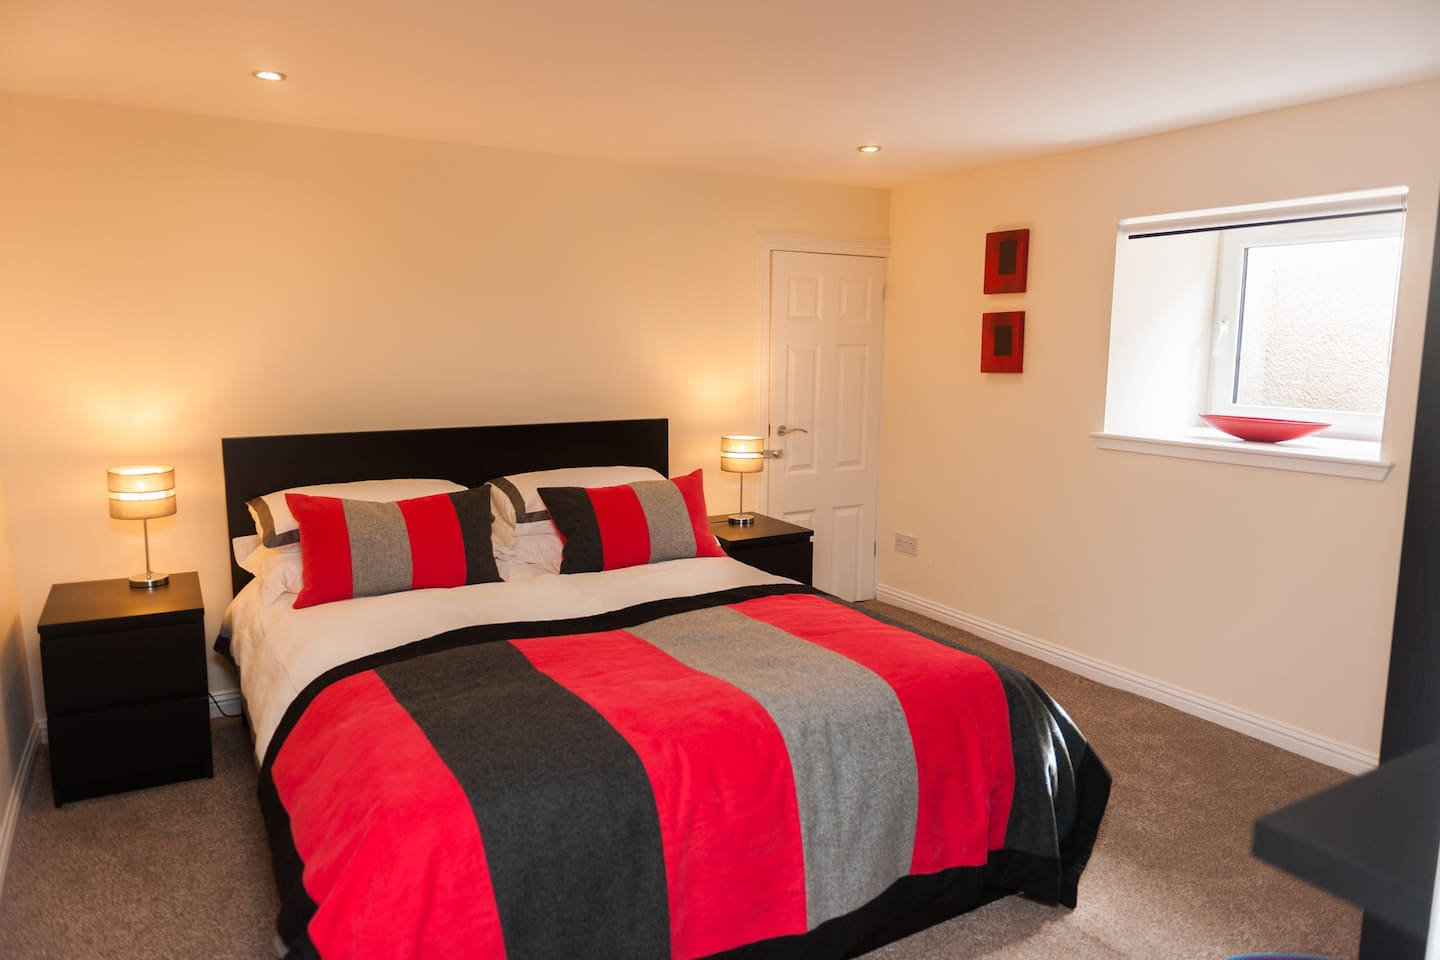 Wyvis Apartment  Opposite Inverness  Castle Fully Self-Contained Apartment  King Size Bed  All Home Comforts:- We've Got Them Covered.